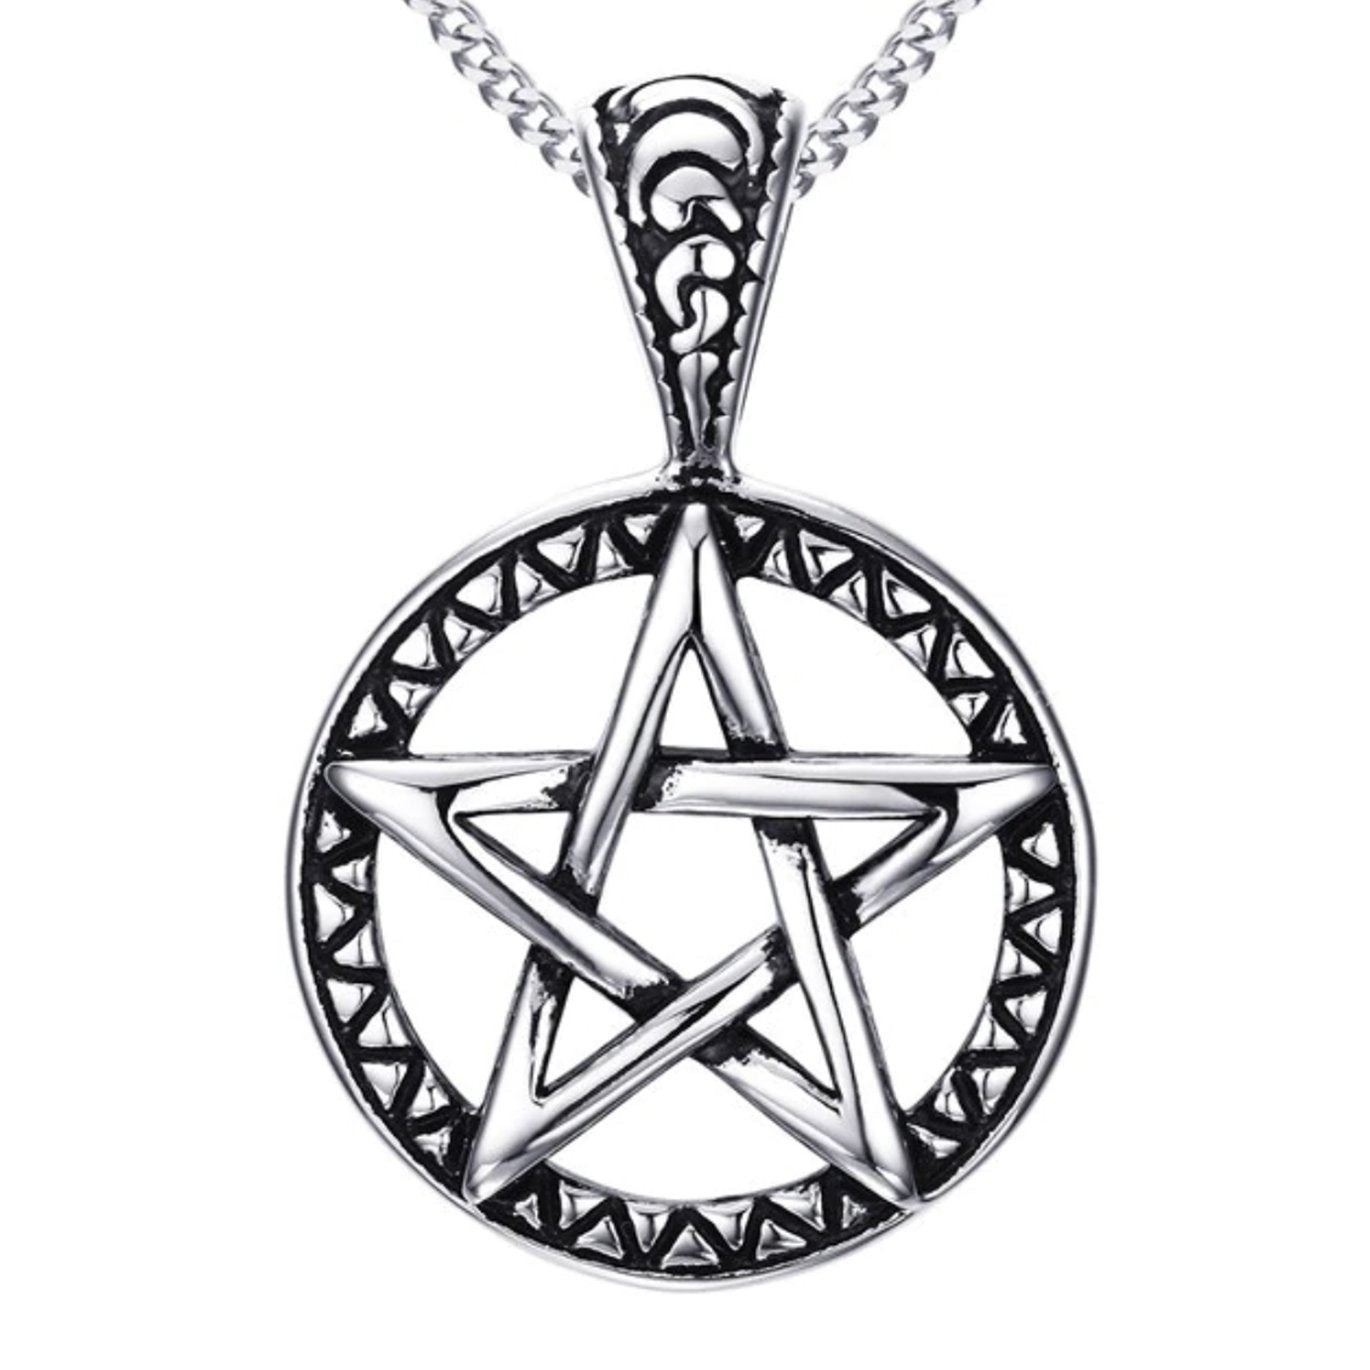 WOVEN PENTACLE NECKLACE